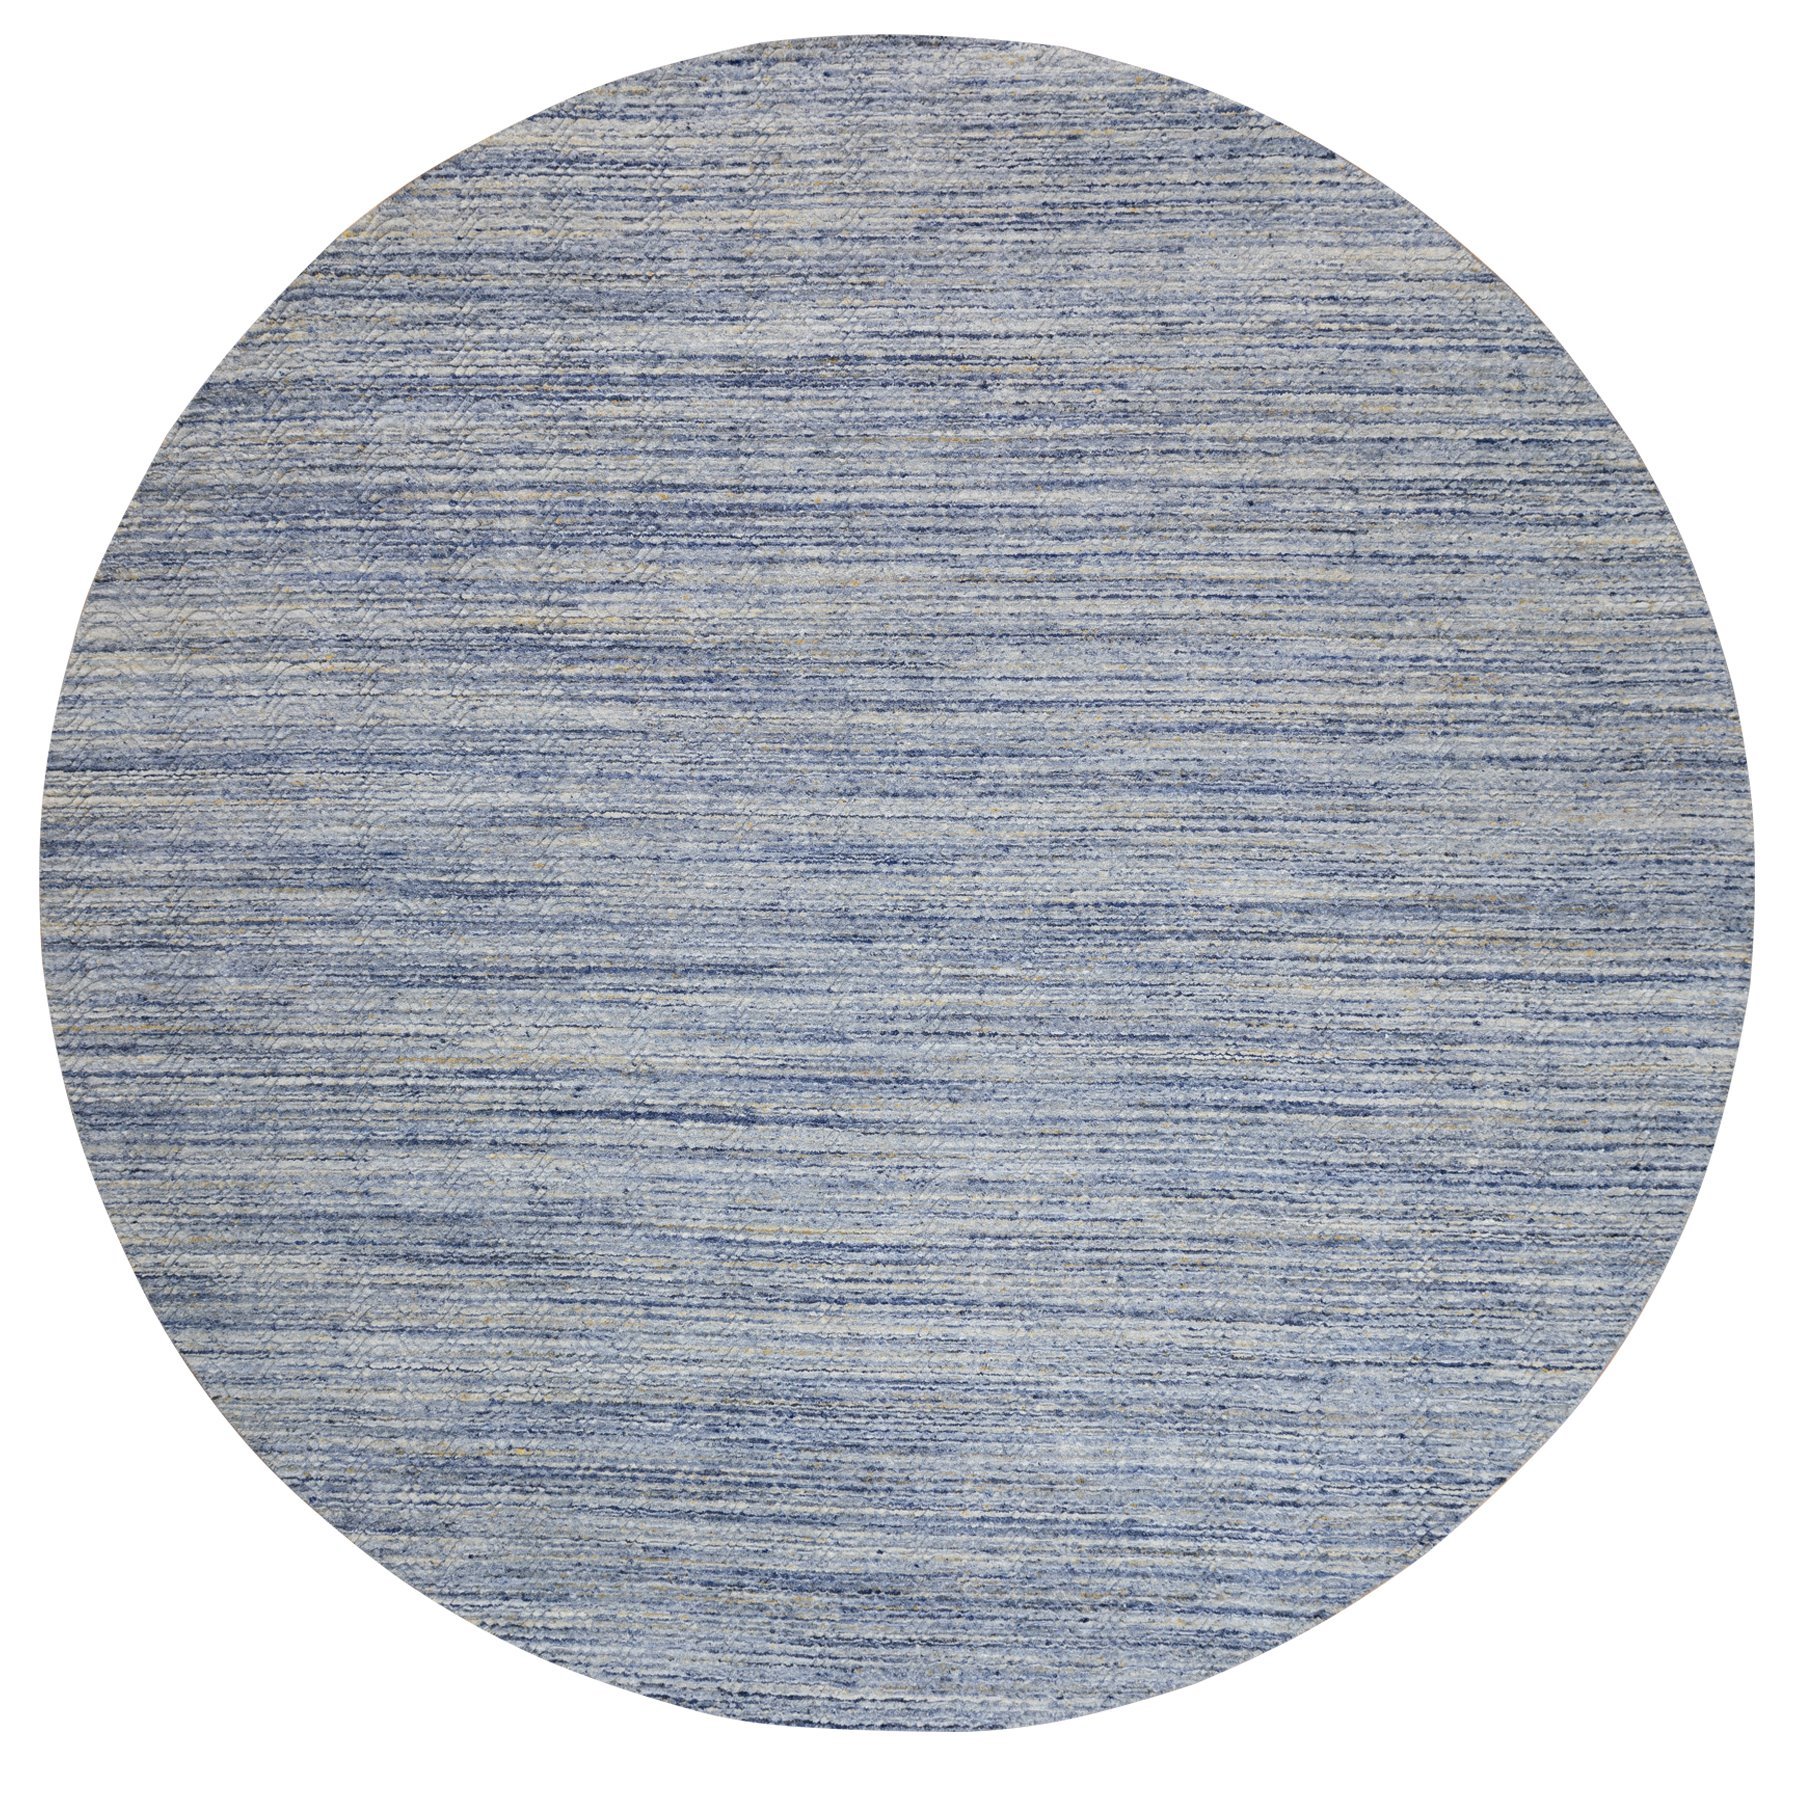 Mid Century Modern Collection Hand Loomed Grey Rug No: 1124198